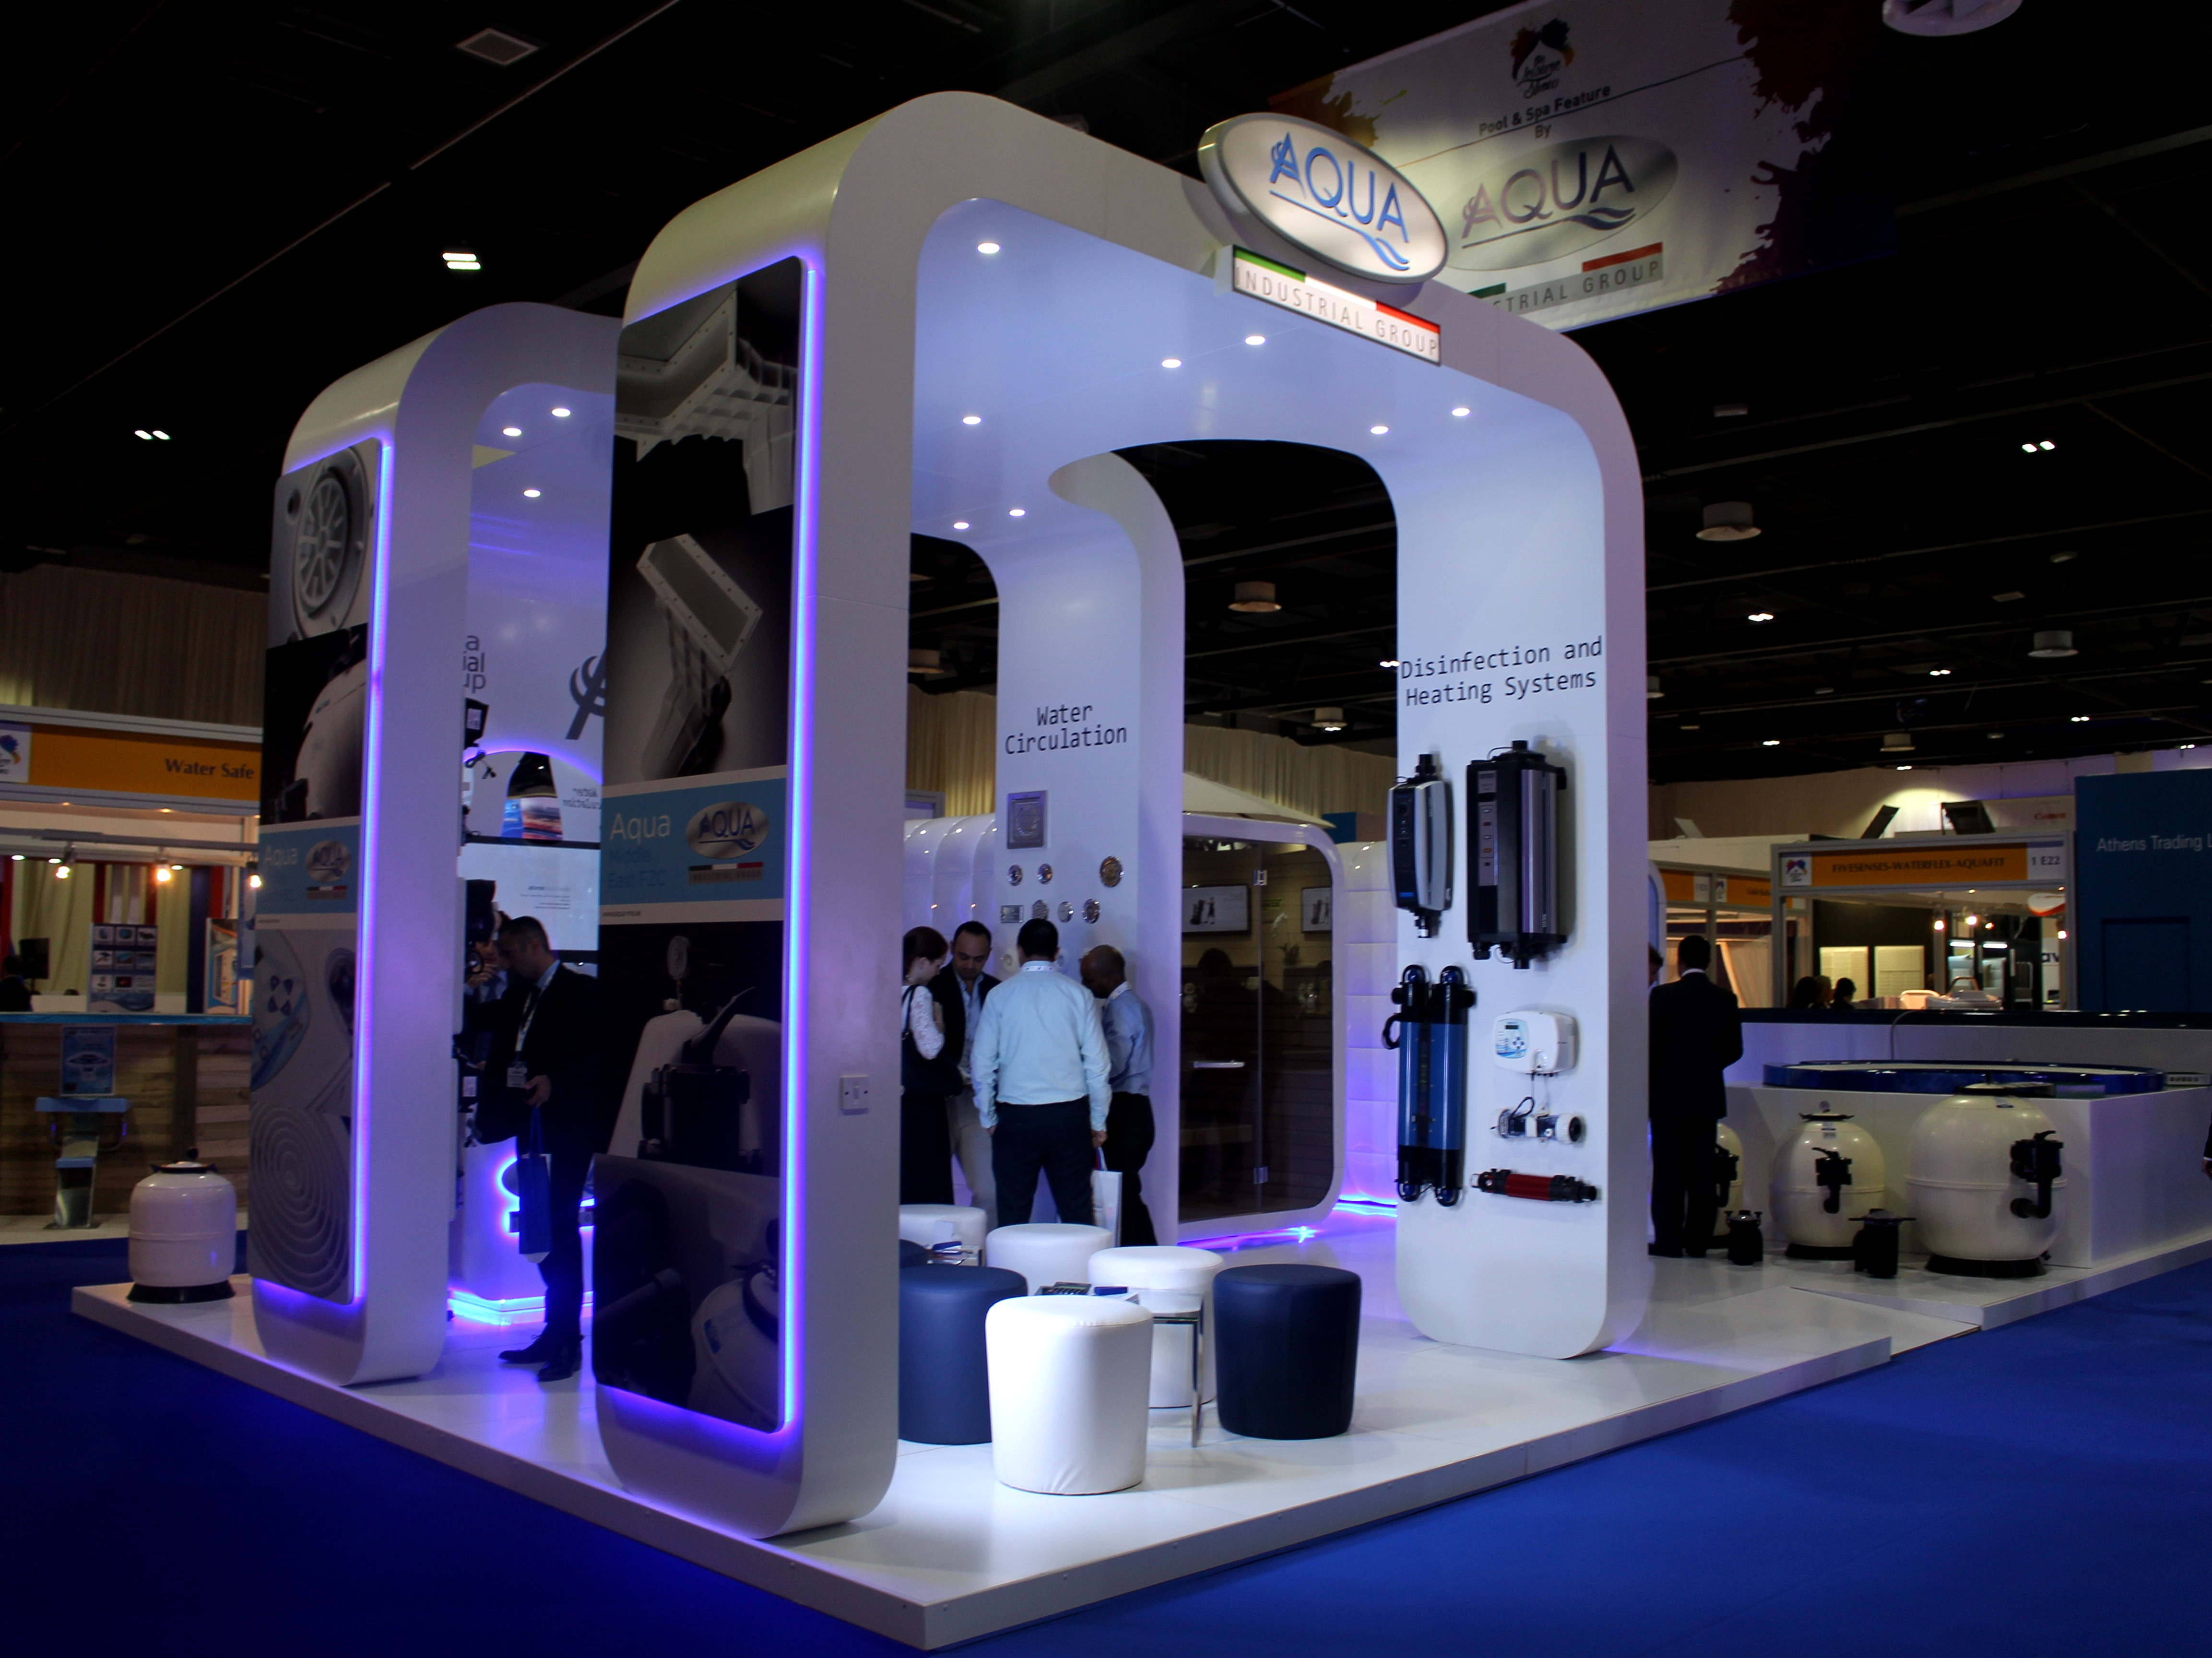 Exhibition Stand Design Companies London : Aqua me artaaj how are you doing